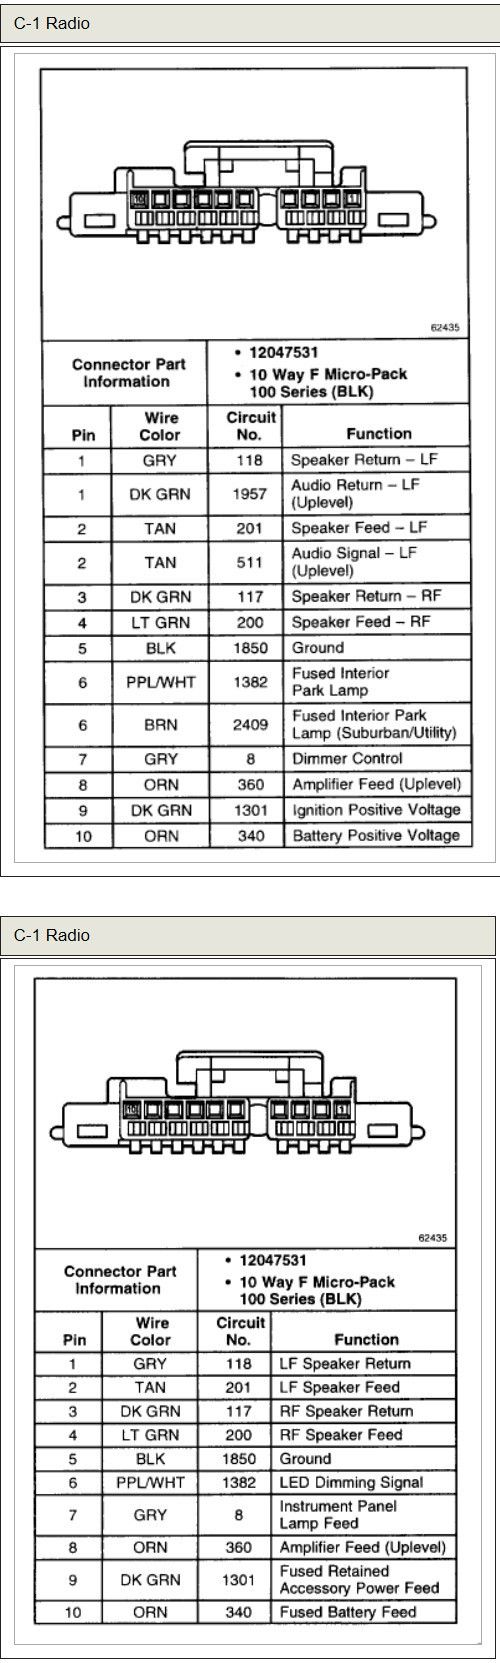 2002 Chevy Wiring Harness Diagram 2013 Impala Wiring Diagram Accessories Case Charging System Wiring Diagram Rise Ralf Kl In 2020 Lincoln Town Car Chevy Trucks Chevy